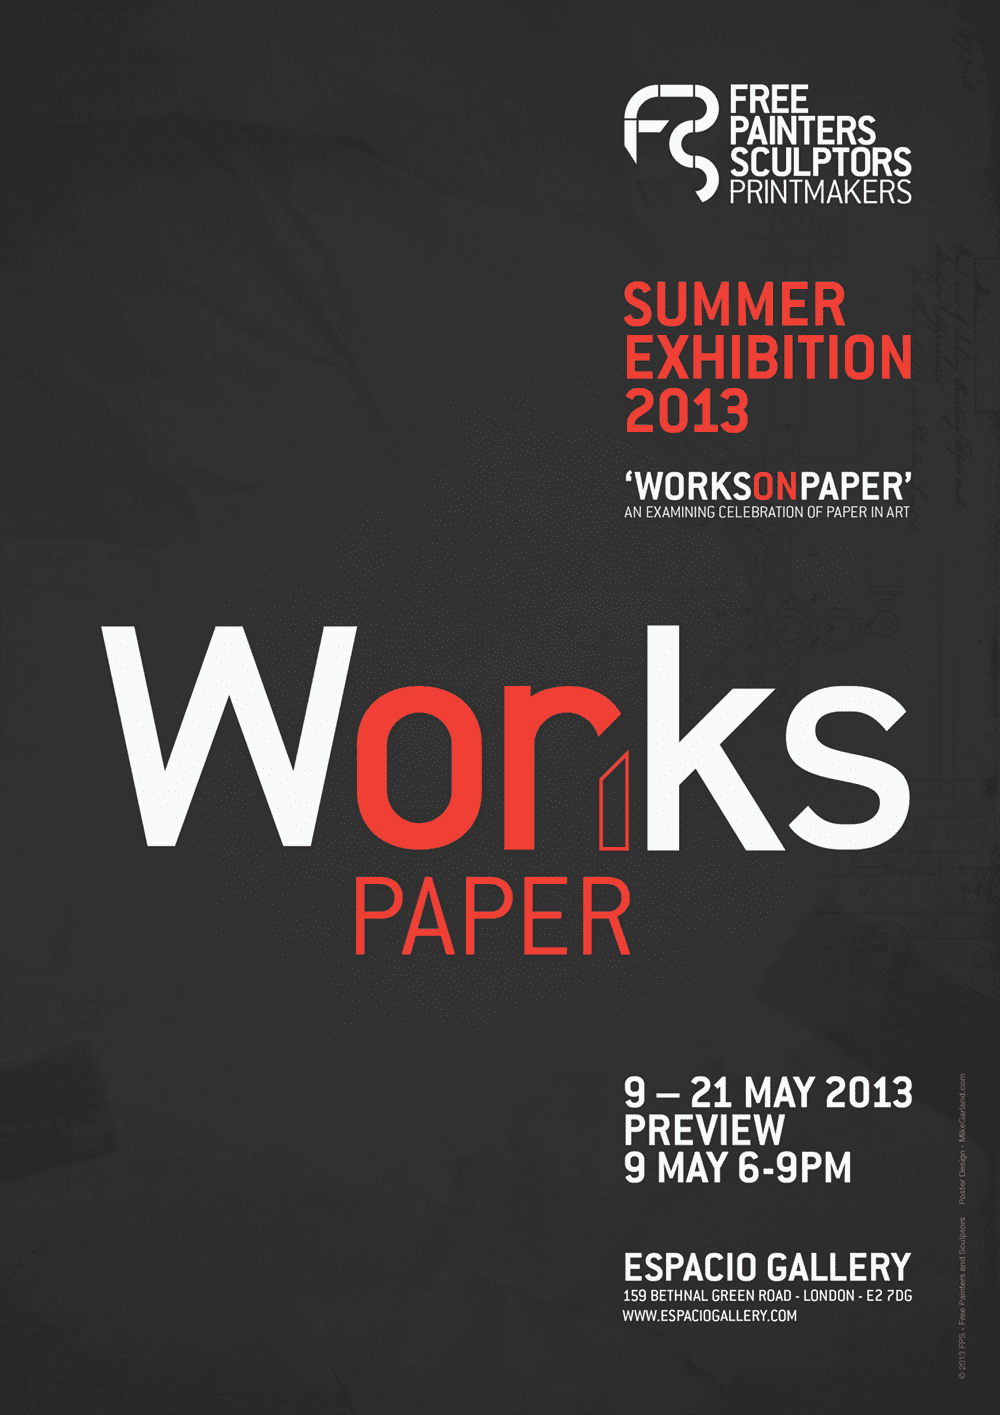 Mike-Garland-Free-Painters-and-Sculptors-Summer-Exhibition-Poster-Design-2013